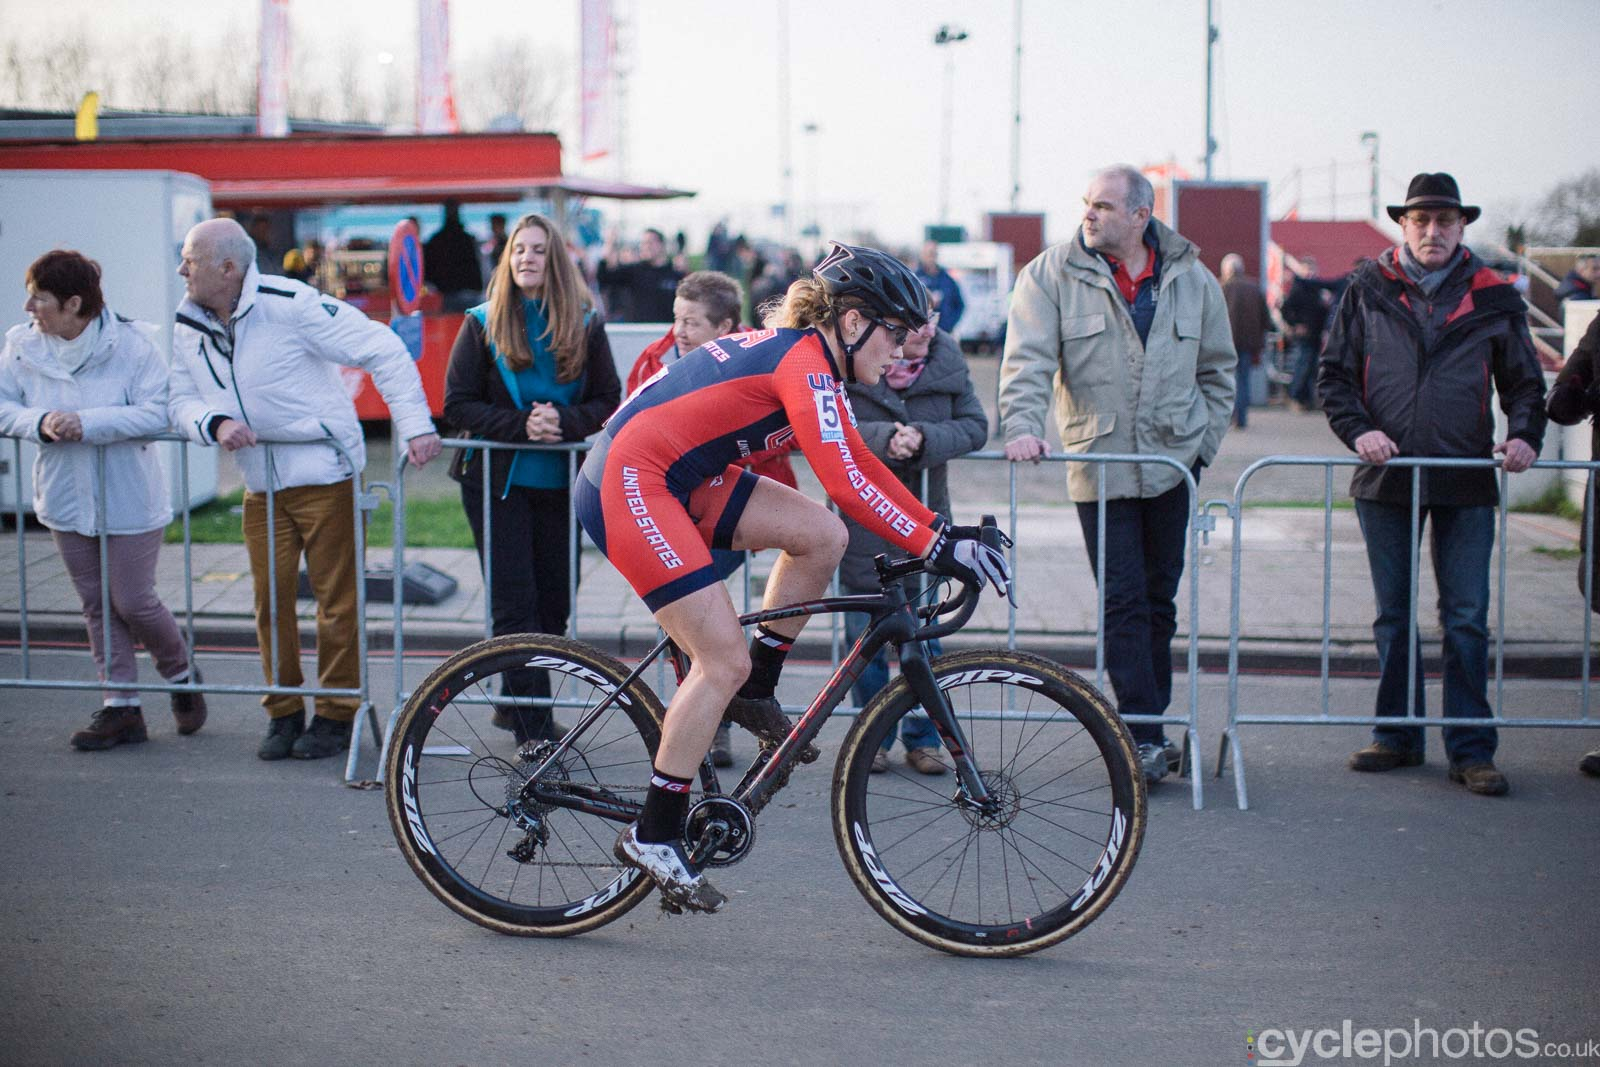 2015-cyclephotos-cyclocross-diegem-154554-elle-anderson